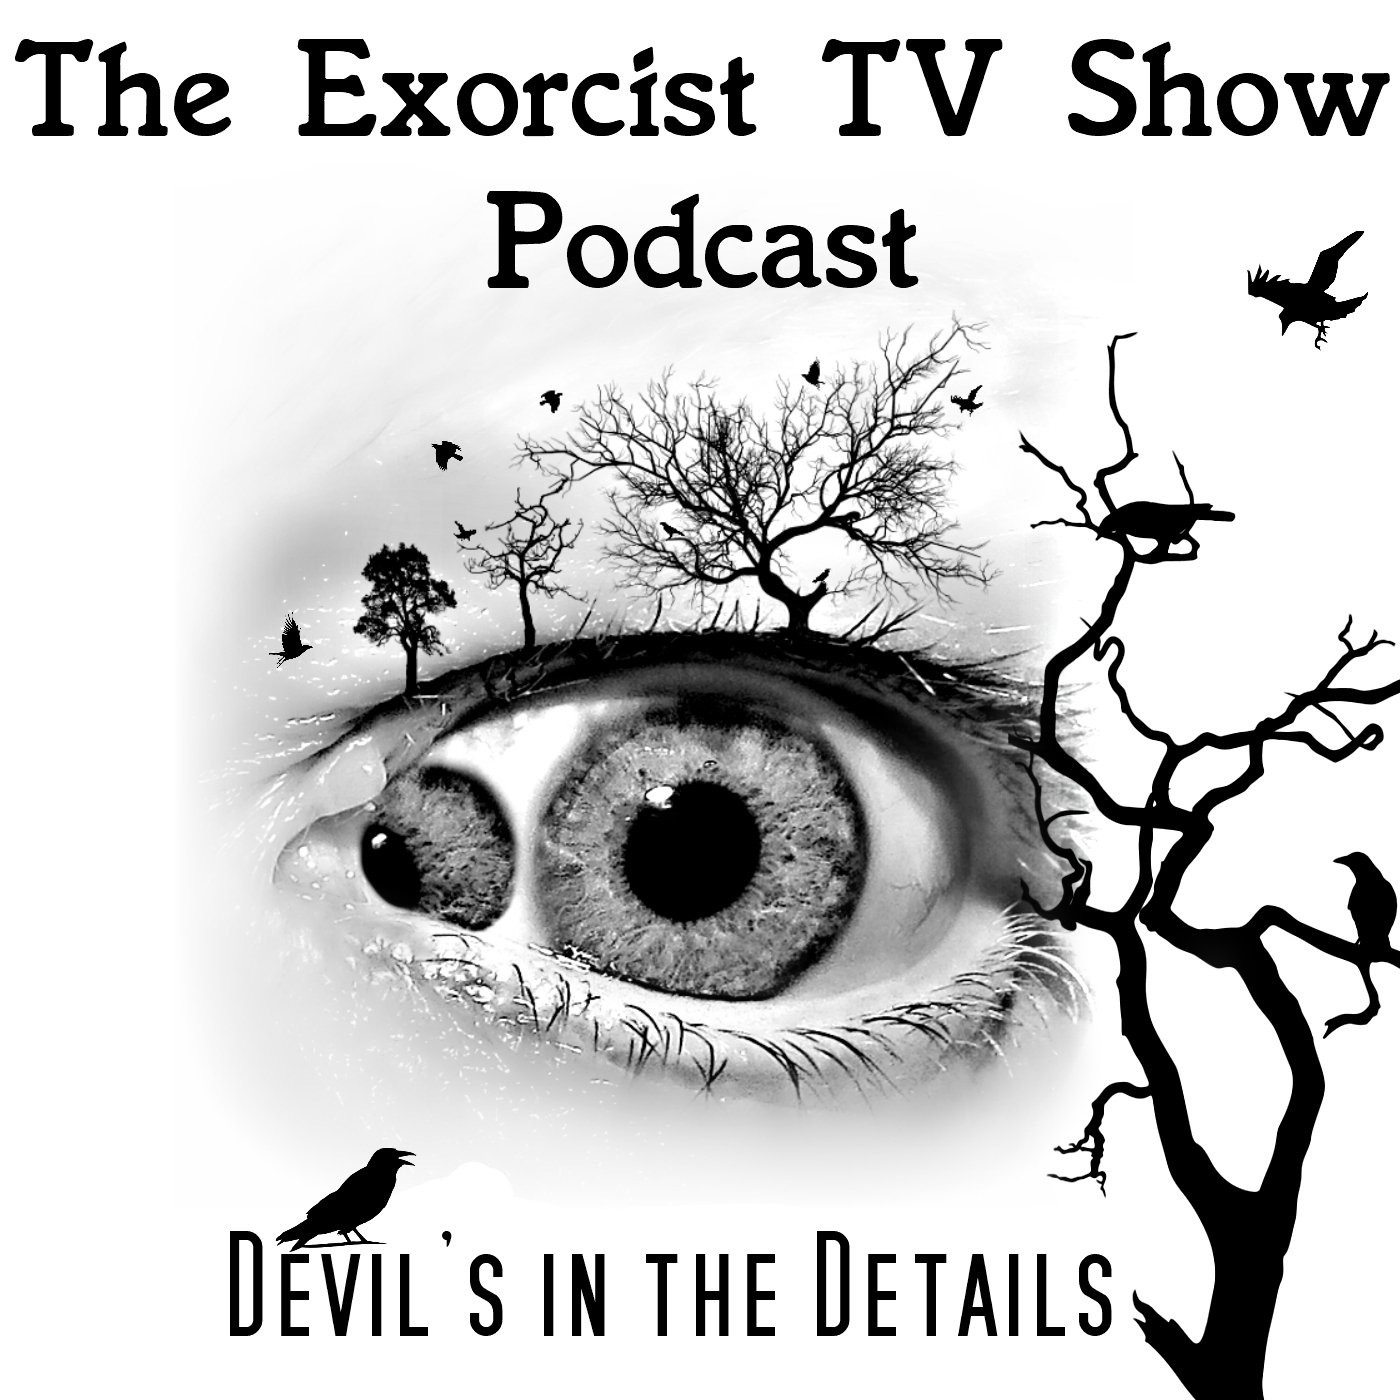 The Exorcist TV Show Podcast